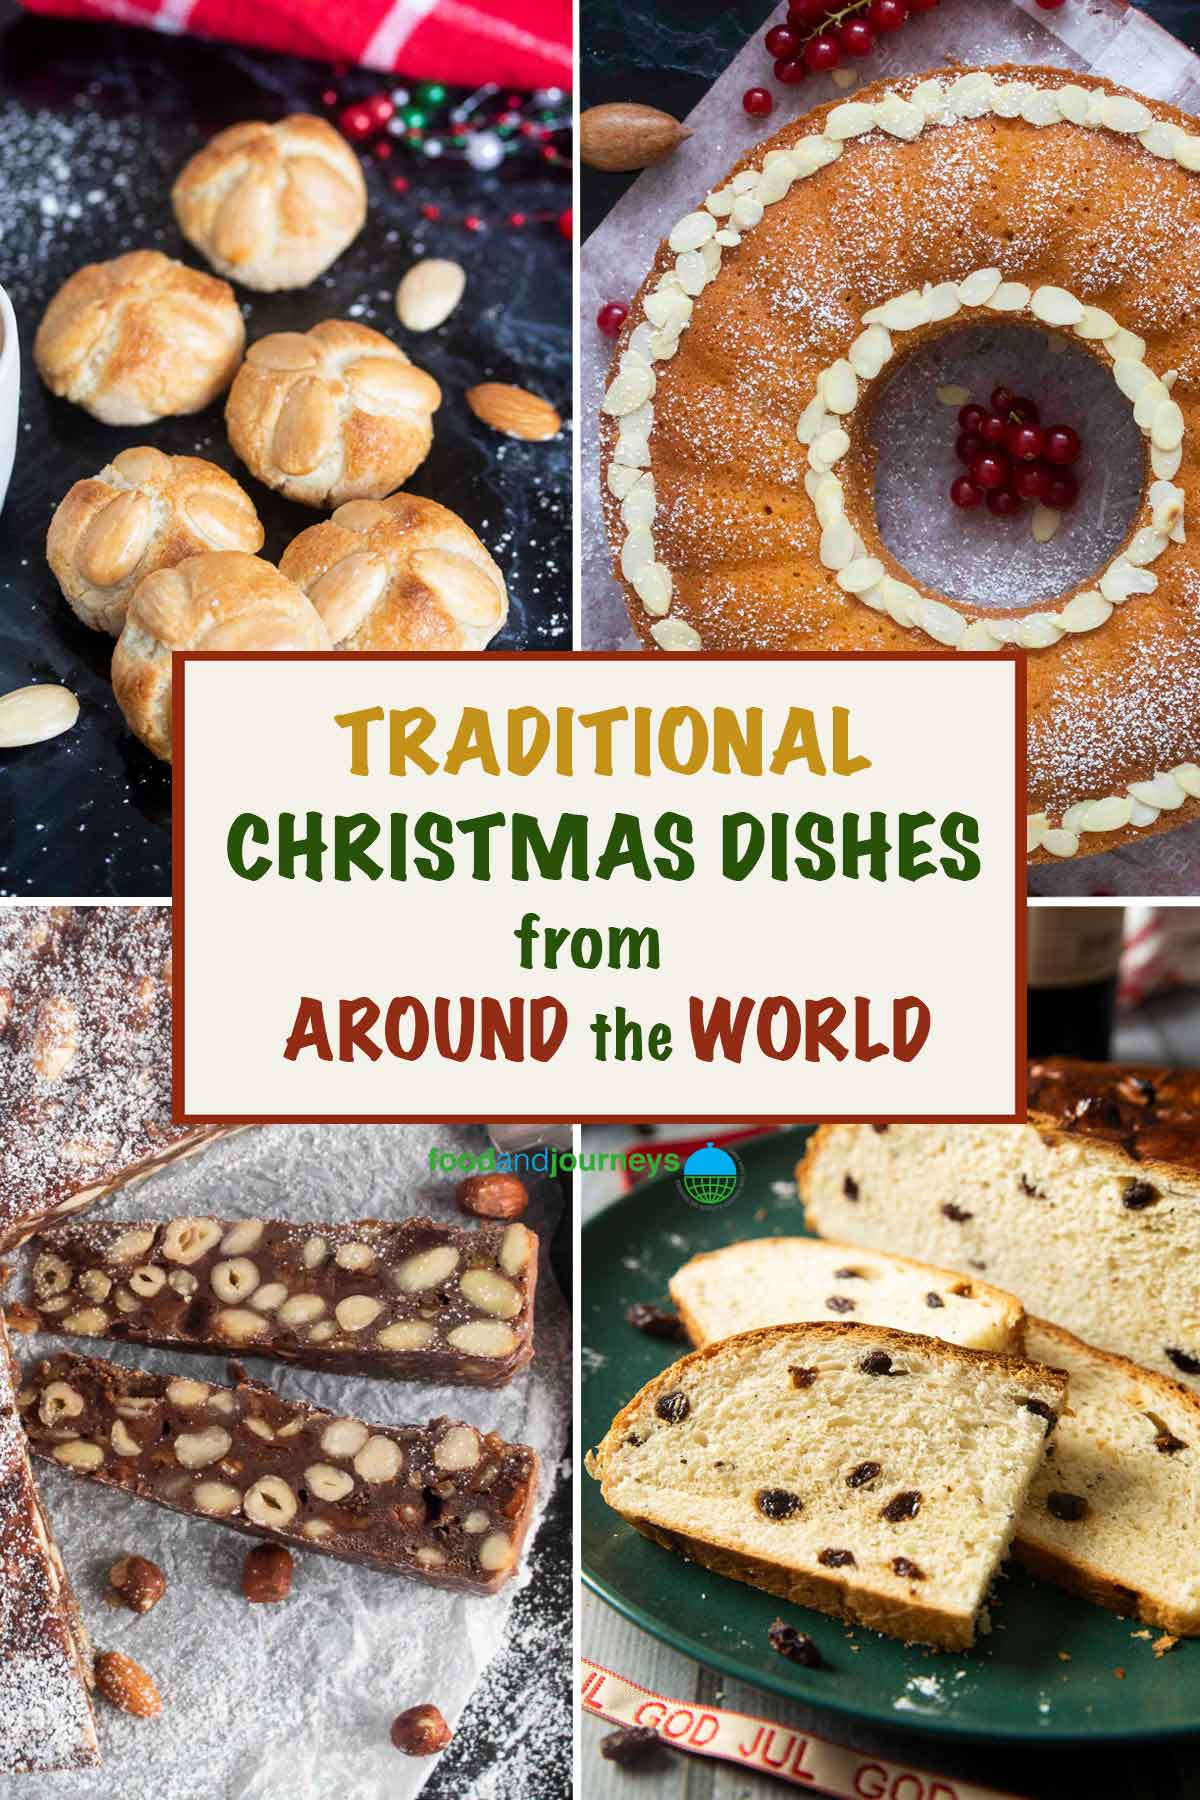 A collage of images showing various traditional Christmas dishes from around the world.